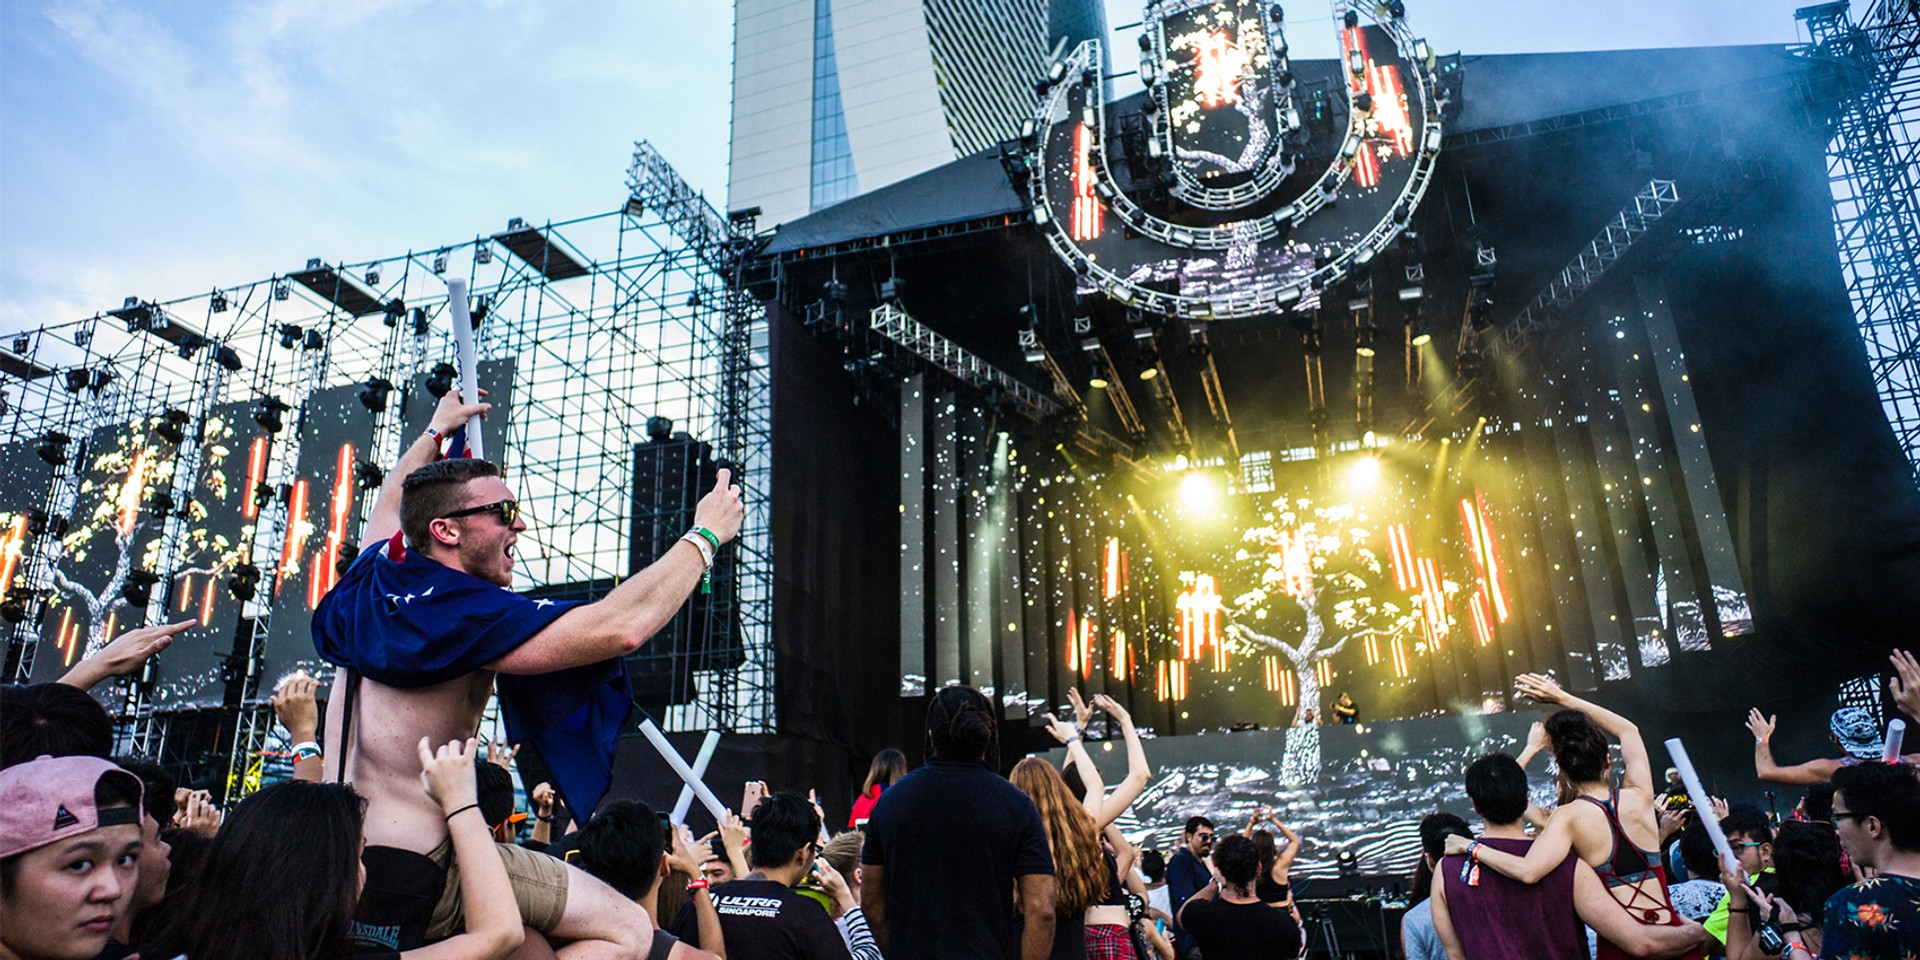 PHOTO GALLERY: All the sweaty EDM madness at Ultra Singapore 2016